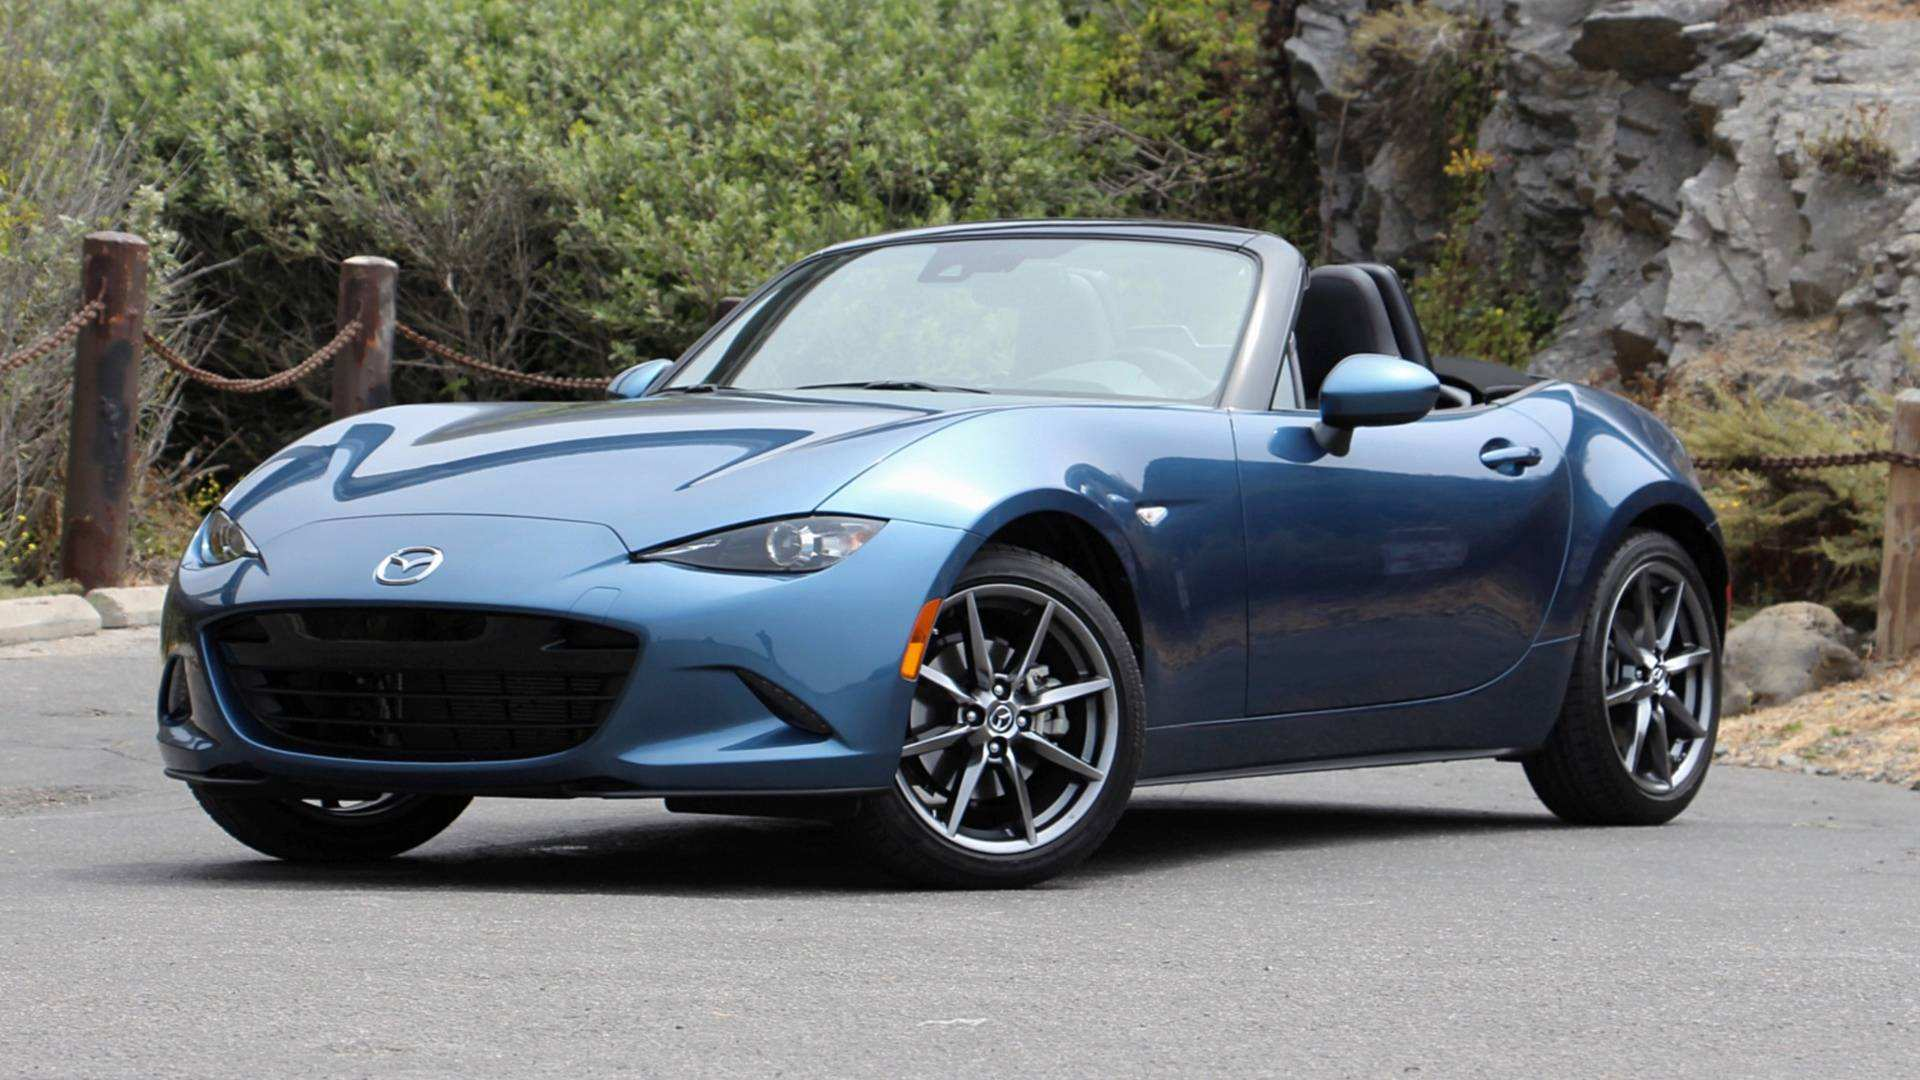 37 All New 2019 Mazda Mx 5 Gt S Model by 2019 Mazda Mx 5 Gt S